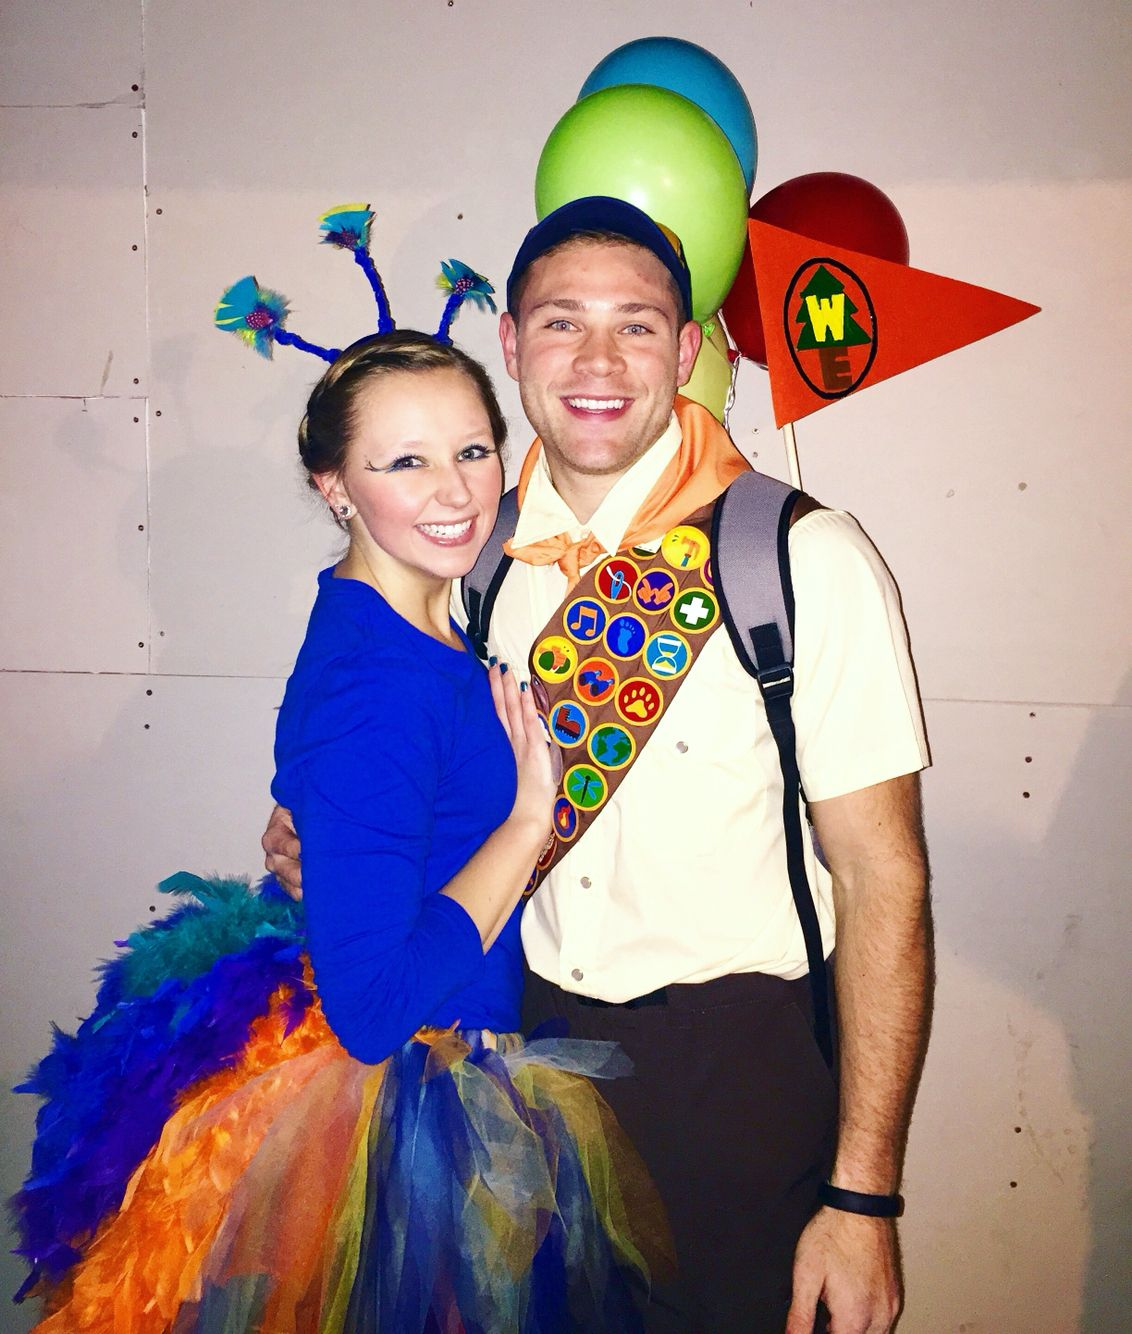 Russell and Kevin from Up Couples Halloween Costume ...